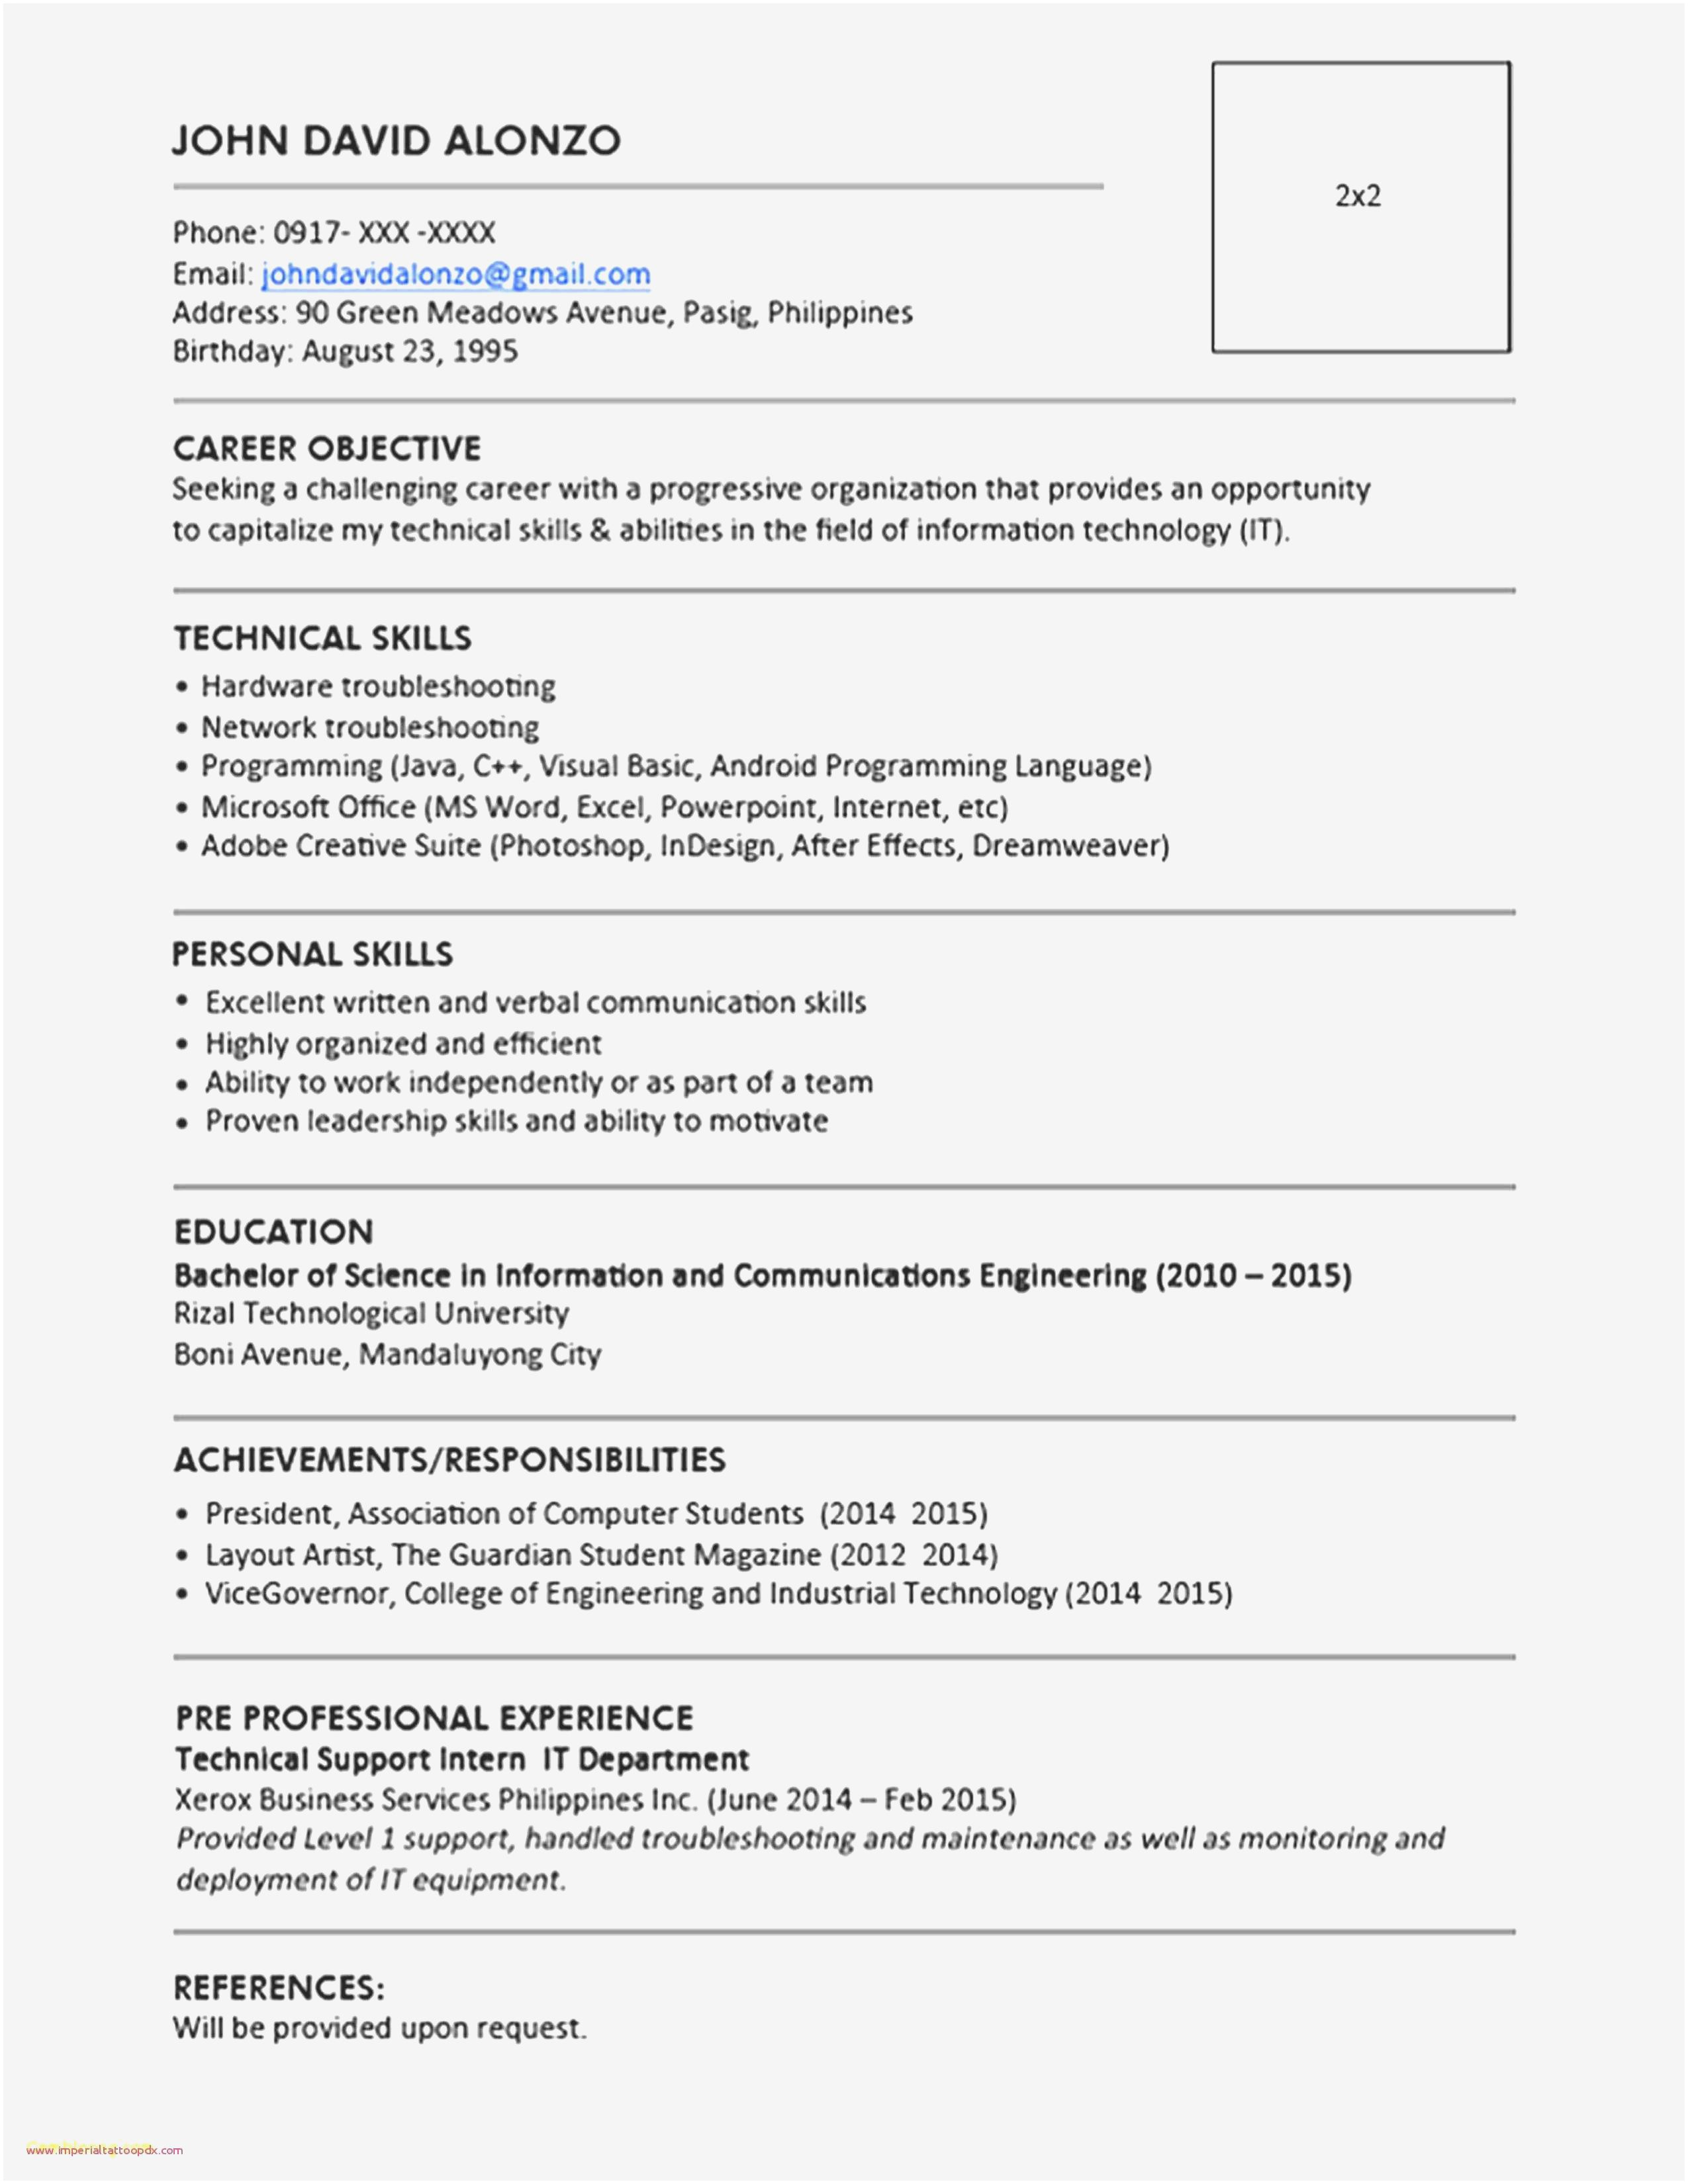 Best Internet Magazines Hairstyles Best Resume Templates Super Awesome Cv Layout Template